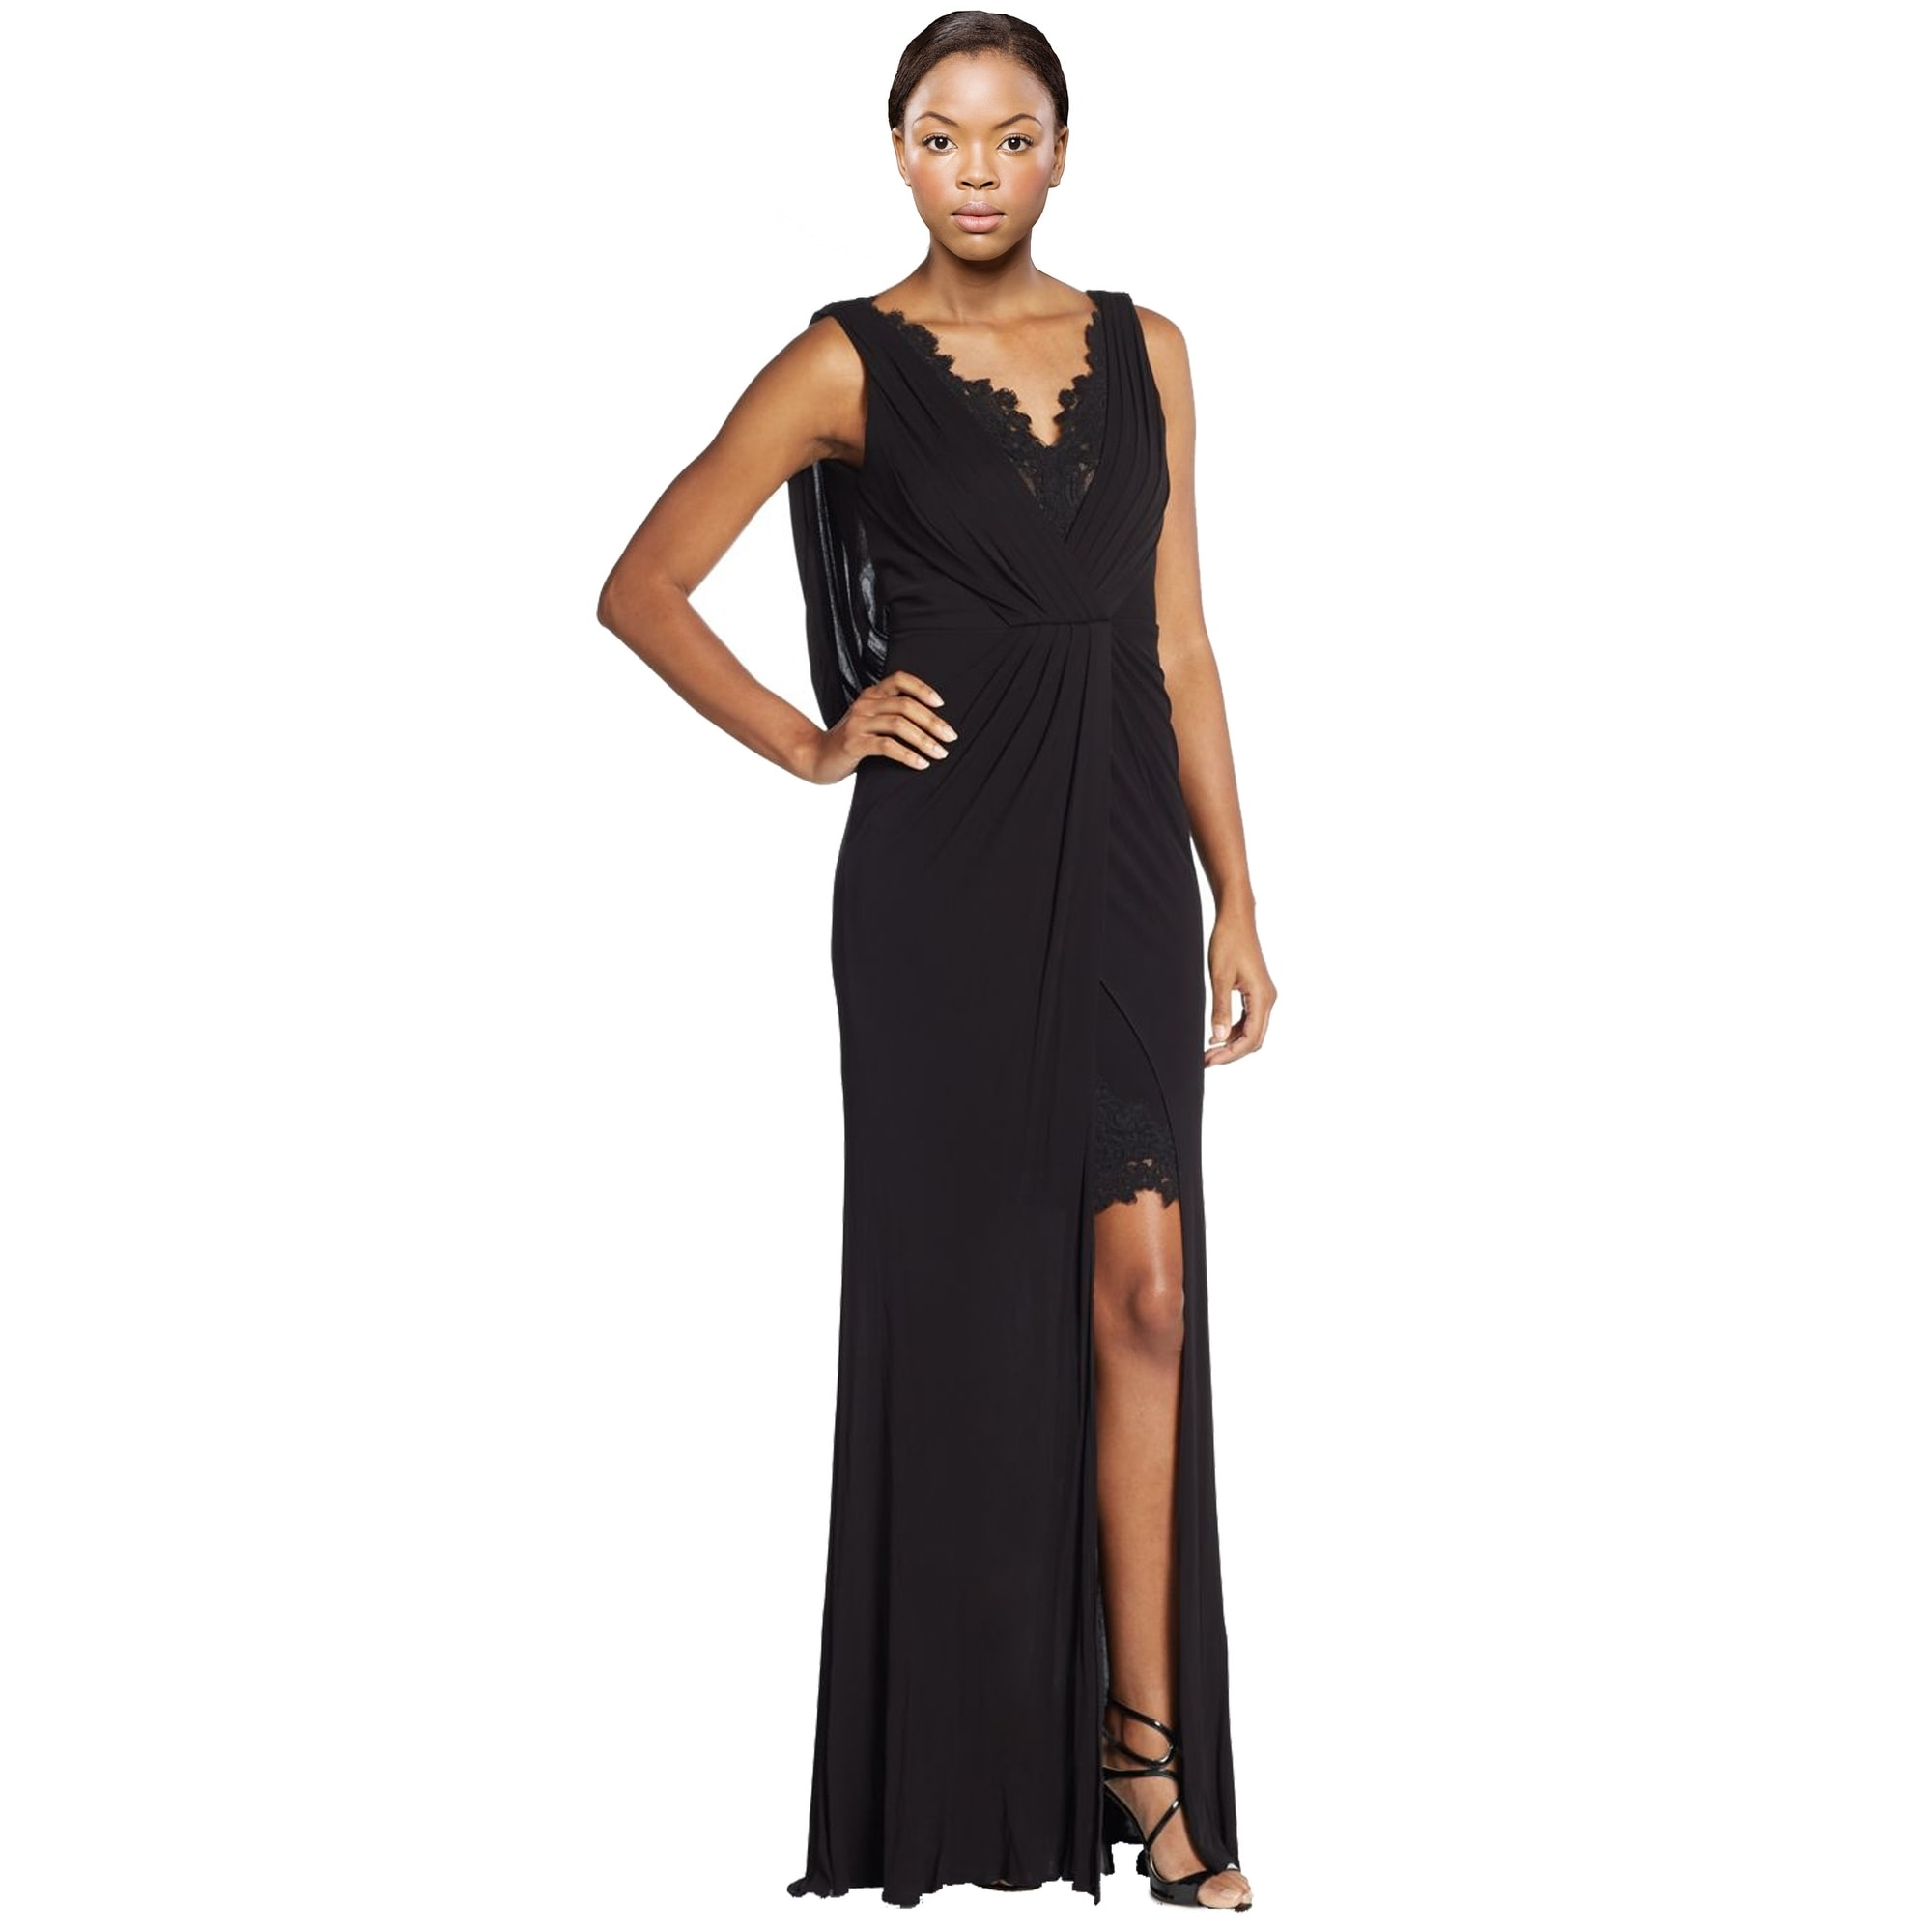 717073b29c4 Shop ML Monique Lhuillier Lace Accented Draped Empire Evening Gown Dress  Black - 12 - Ships To Canada - Overstock - 14104138